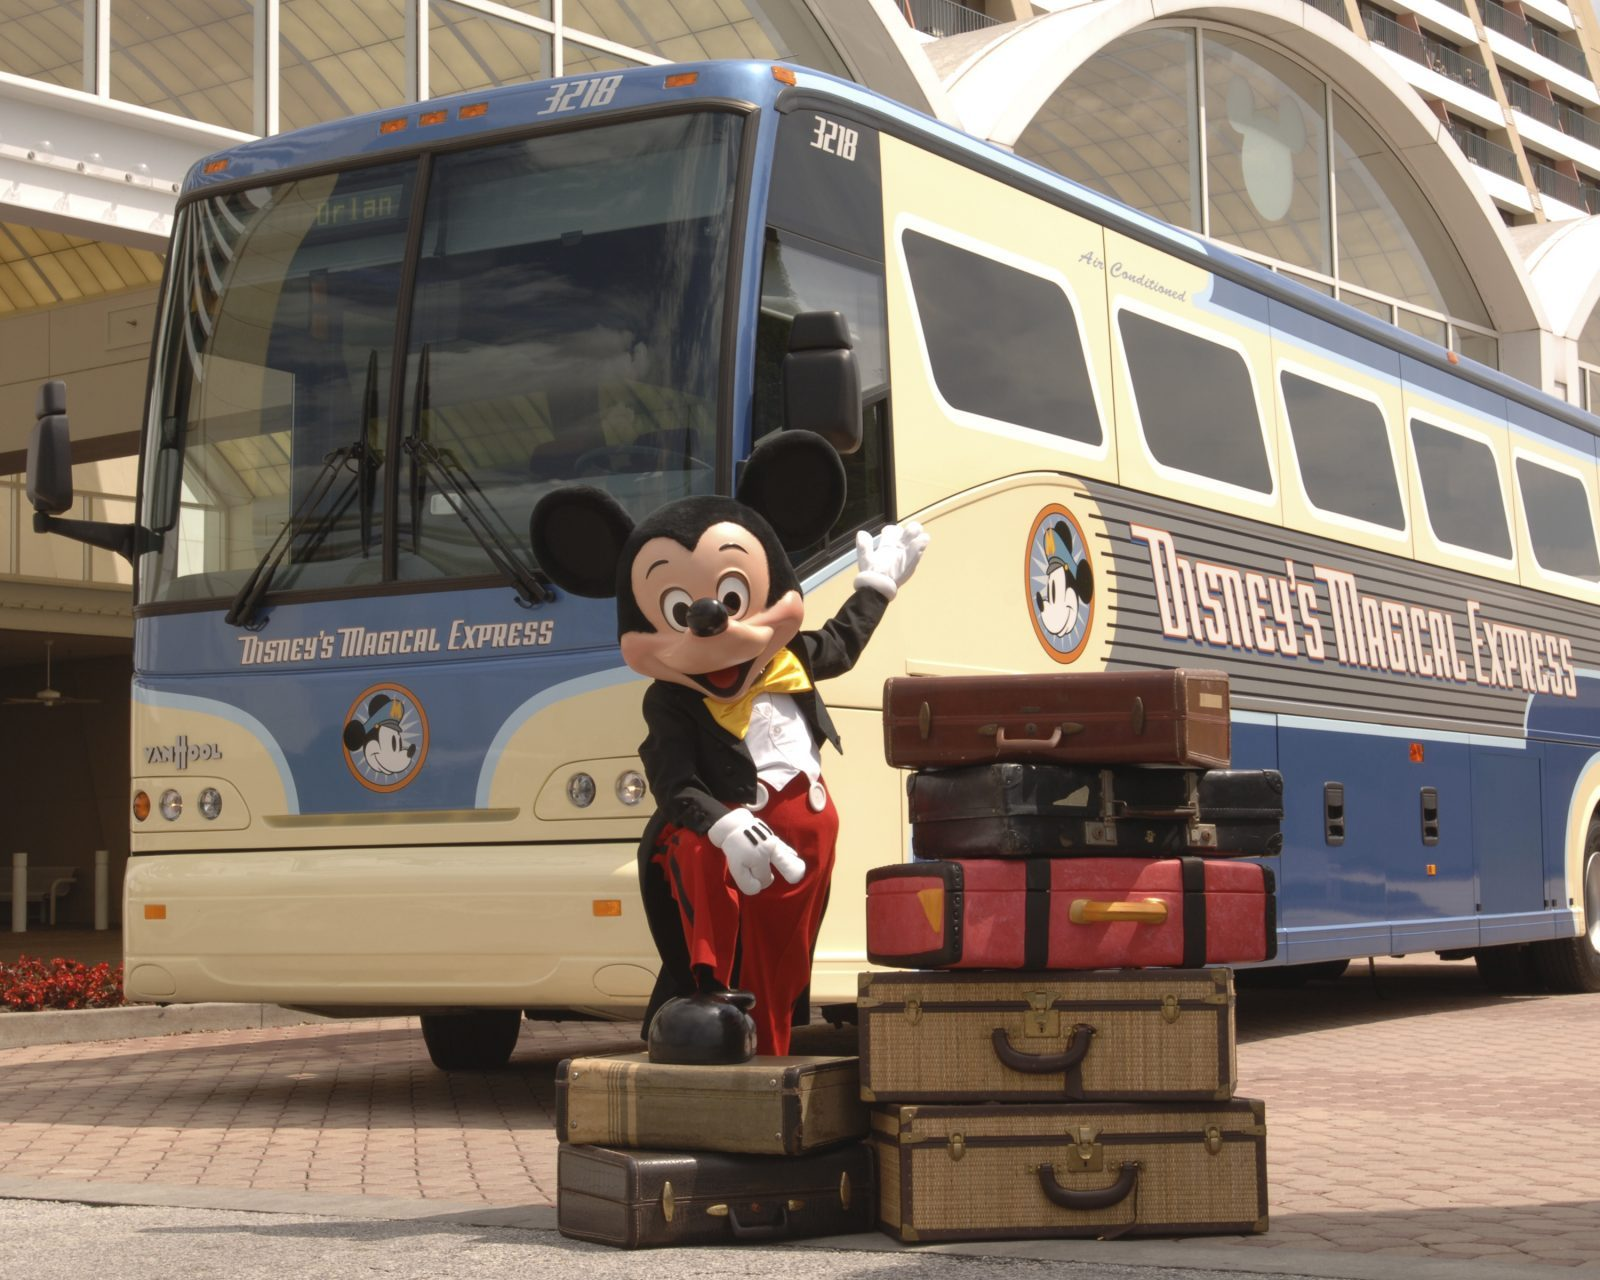 Disney Magical Express bus and Mickey Mouse with luggage